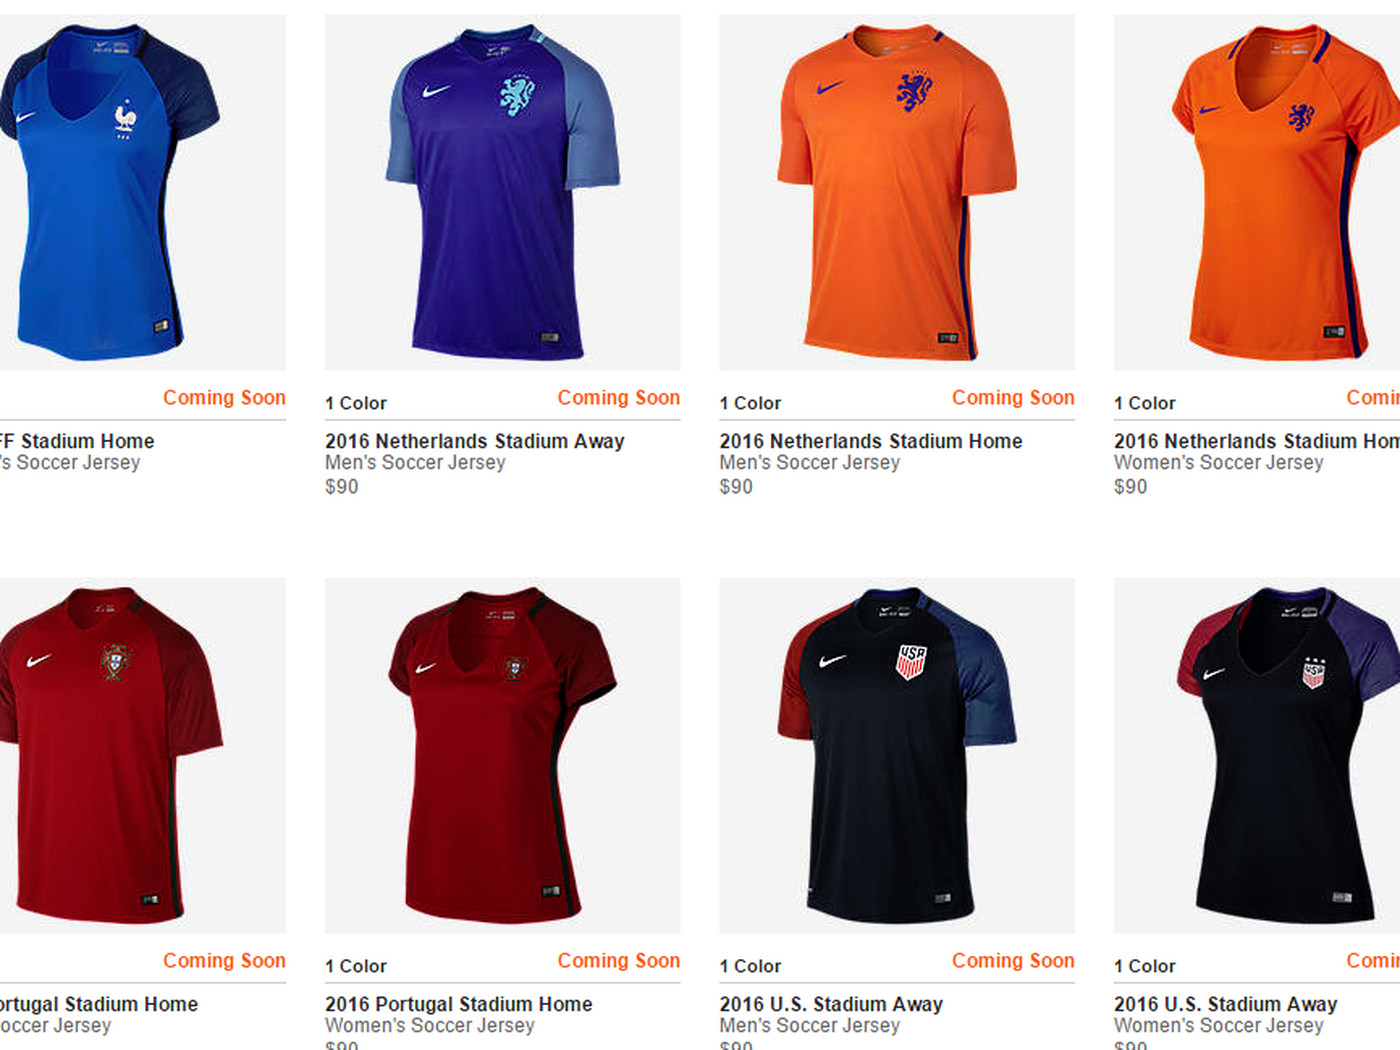 9936743183d Nike Soccer thinks women's jerseys need to show more skin - Stars and  Stripes FC